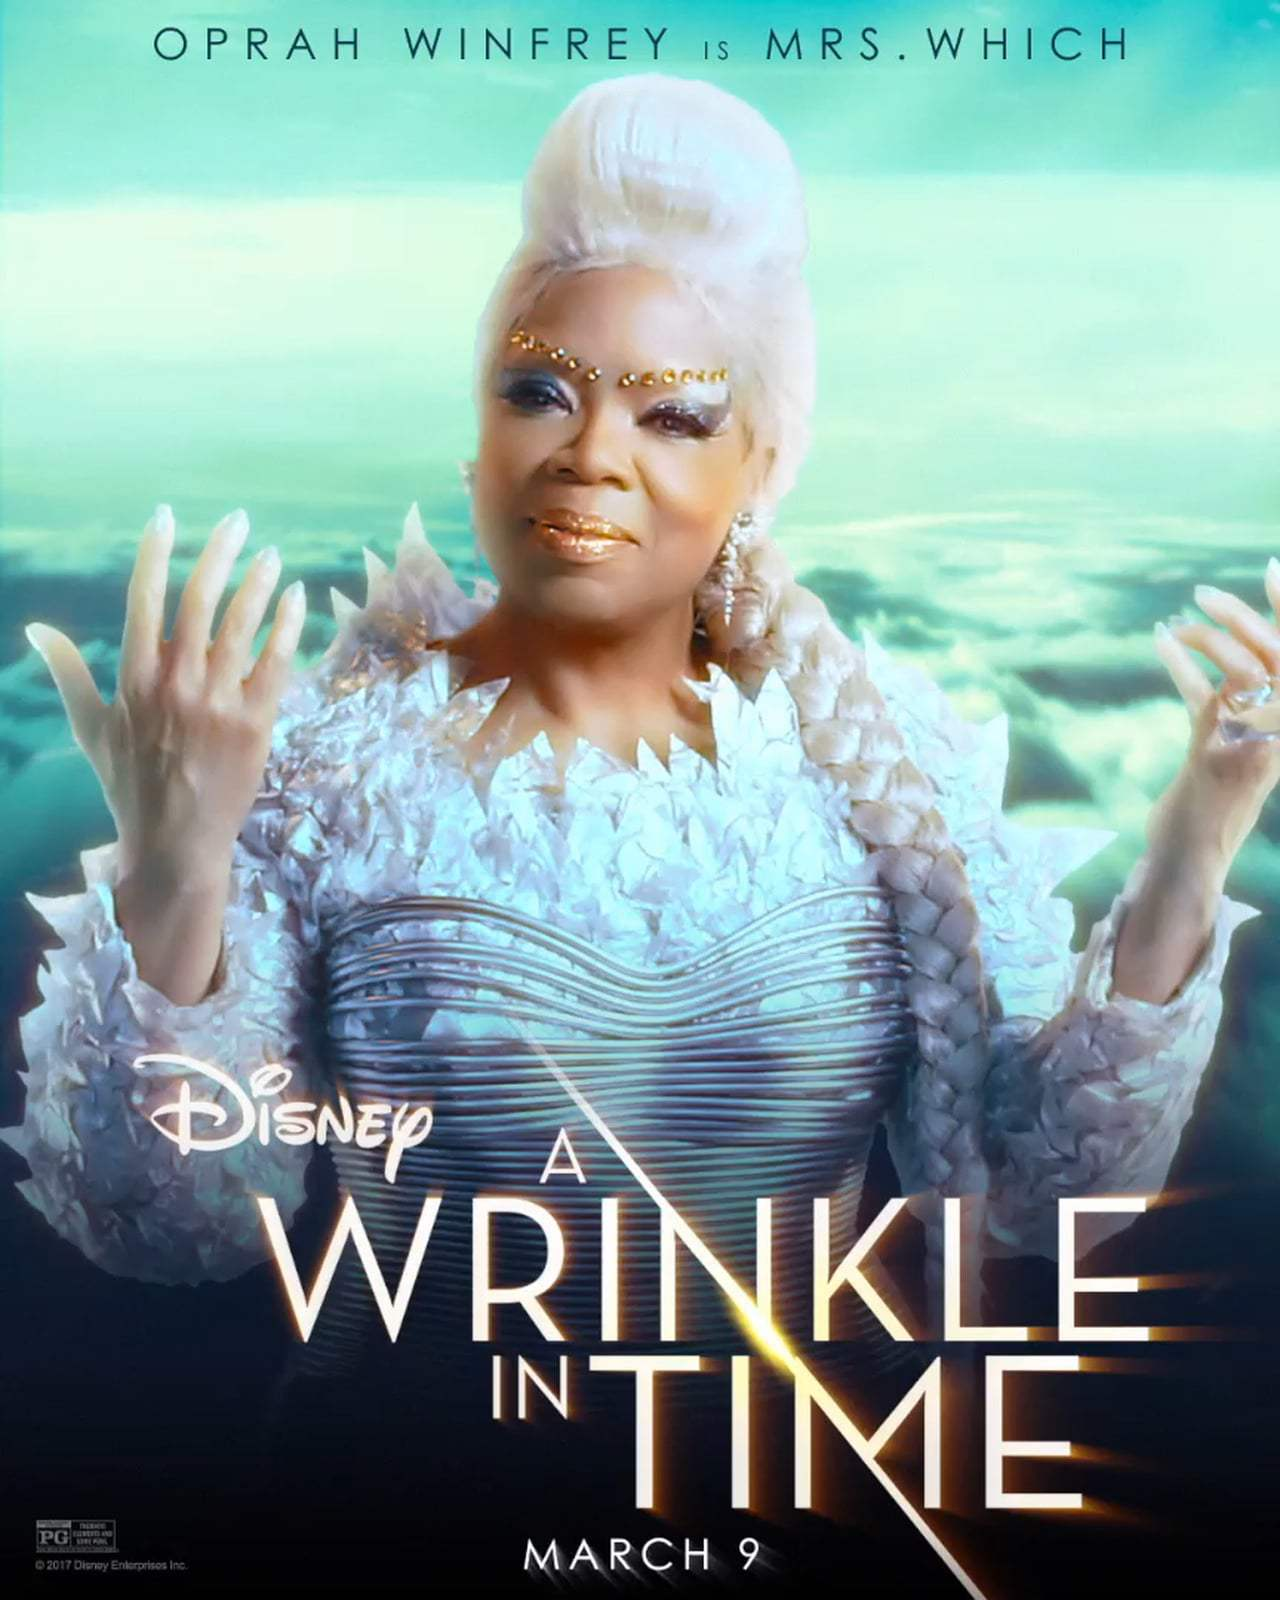 A Wrinkle in Time Motion Poster - Mrs. Which (2018)